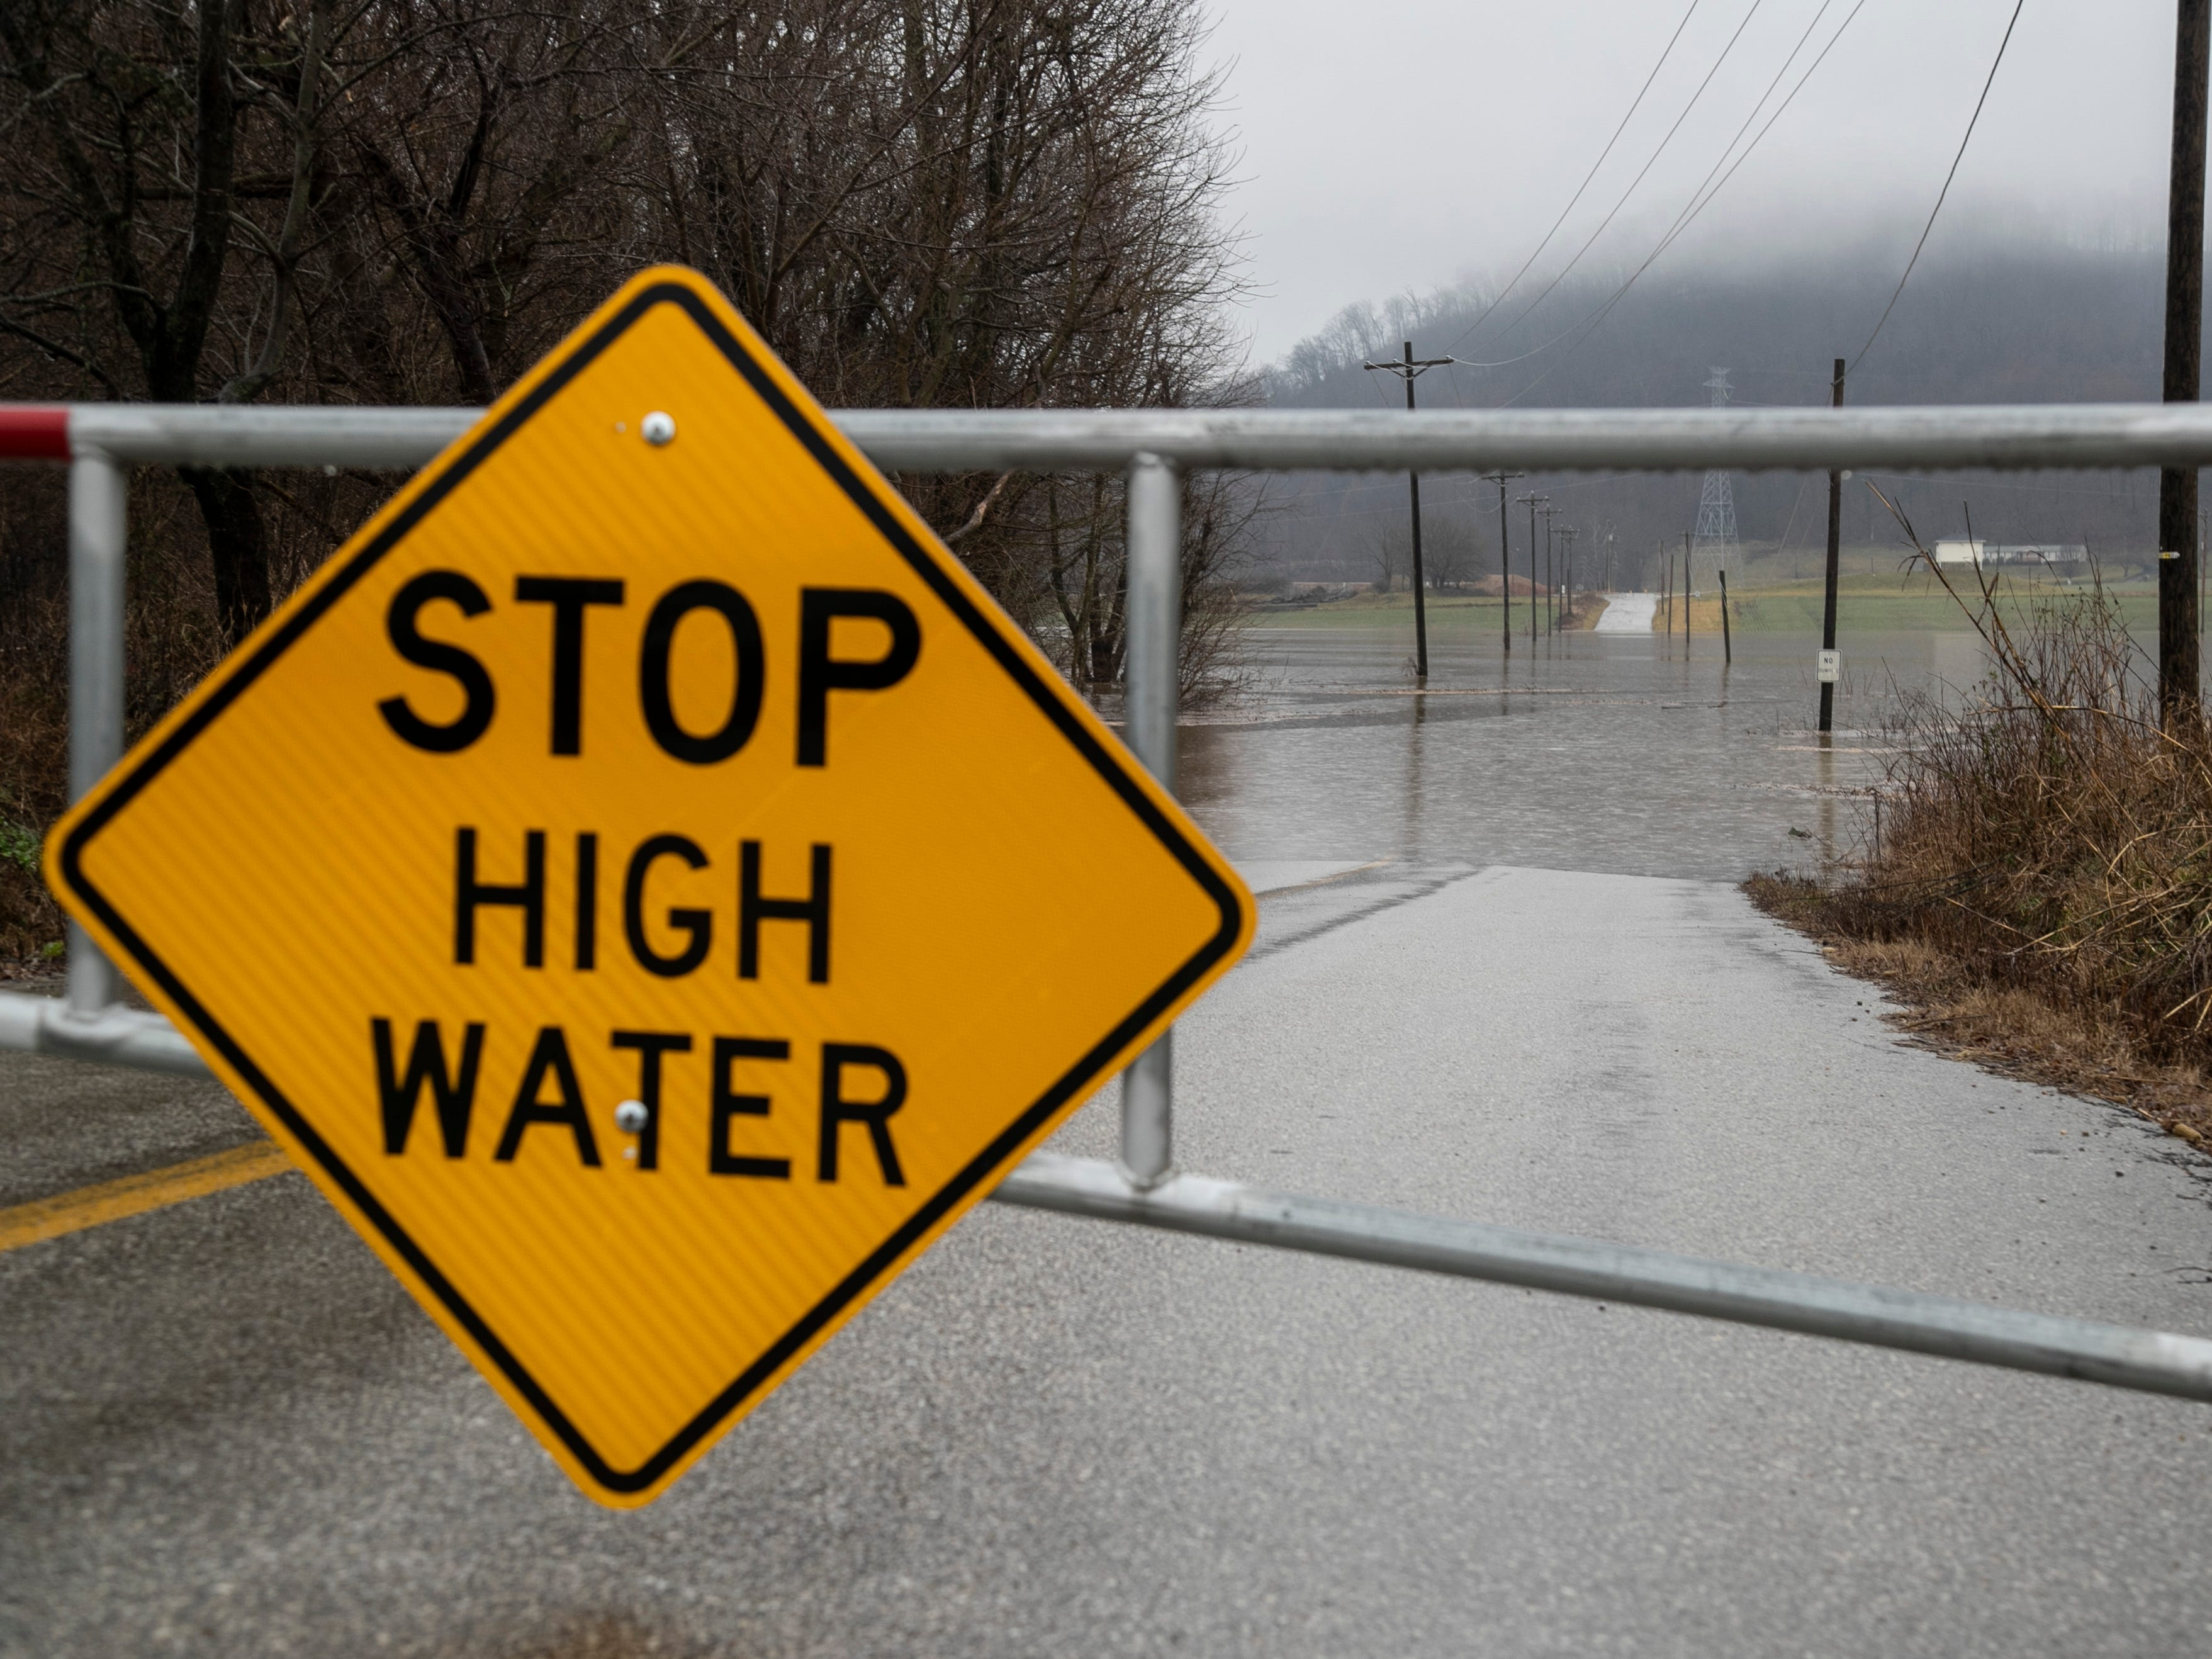 Seven Mile Lane in Floyd County, Indiana near the Horseshoe Casino was closed due to high water and flooding Monday. Feb. 11, 2019